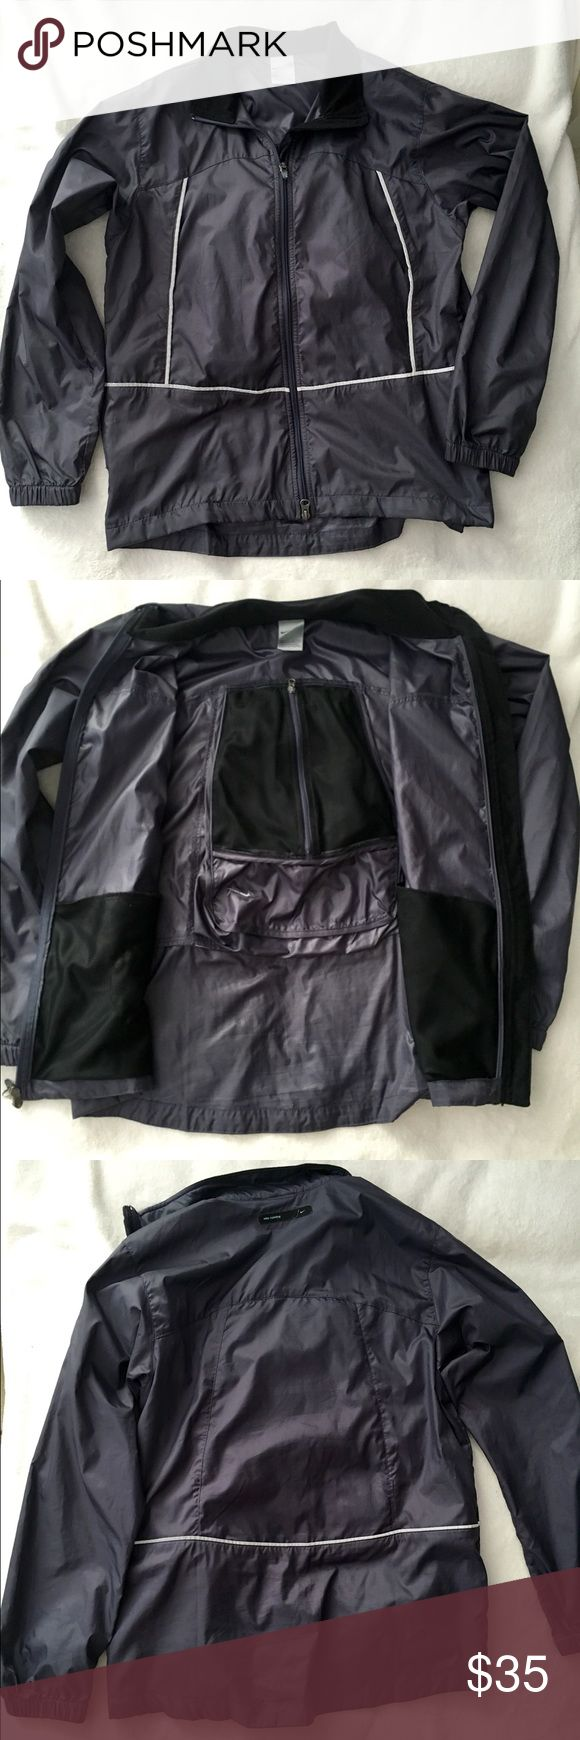 Nike Running Jacket Size Medium wind jacket. Has multiple different pockets and reflectors. Darker gray in color. Nike Jackets & Coats